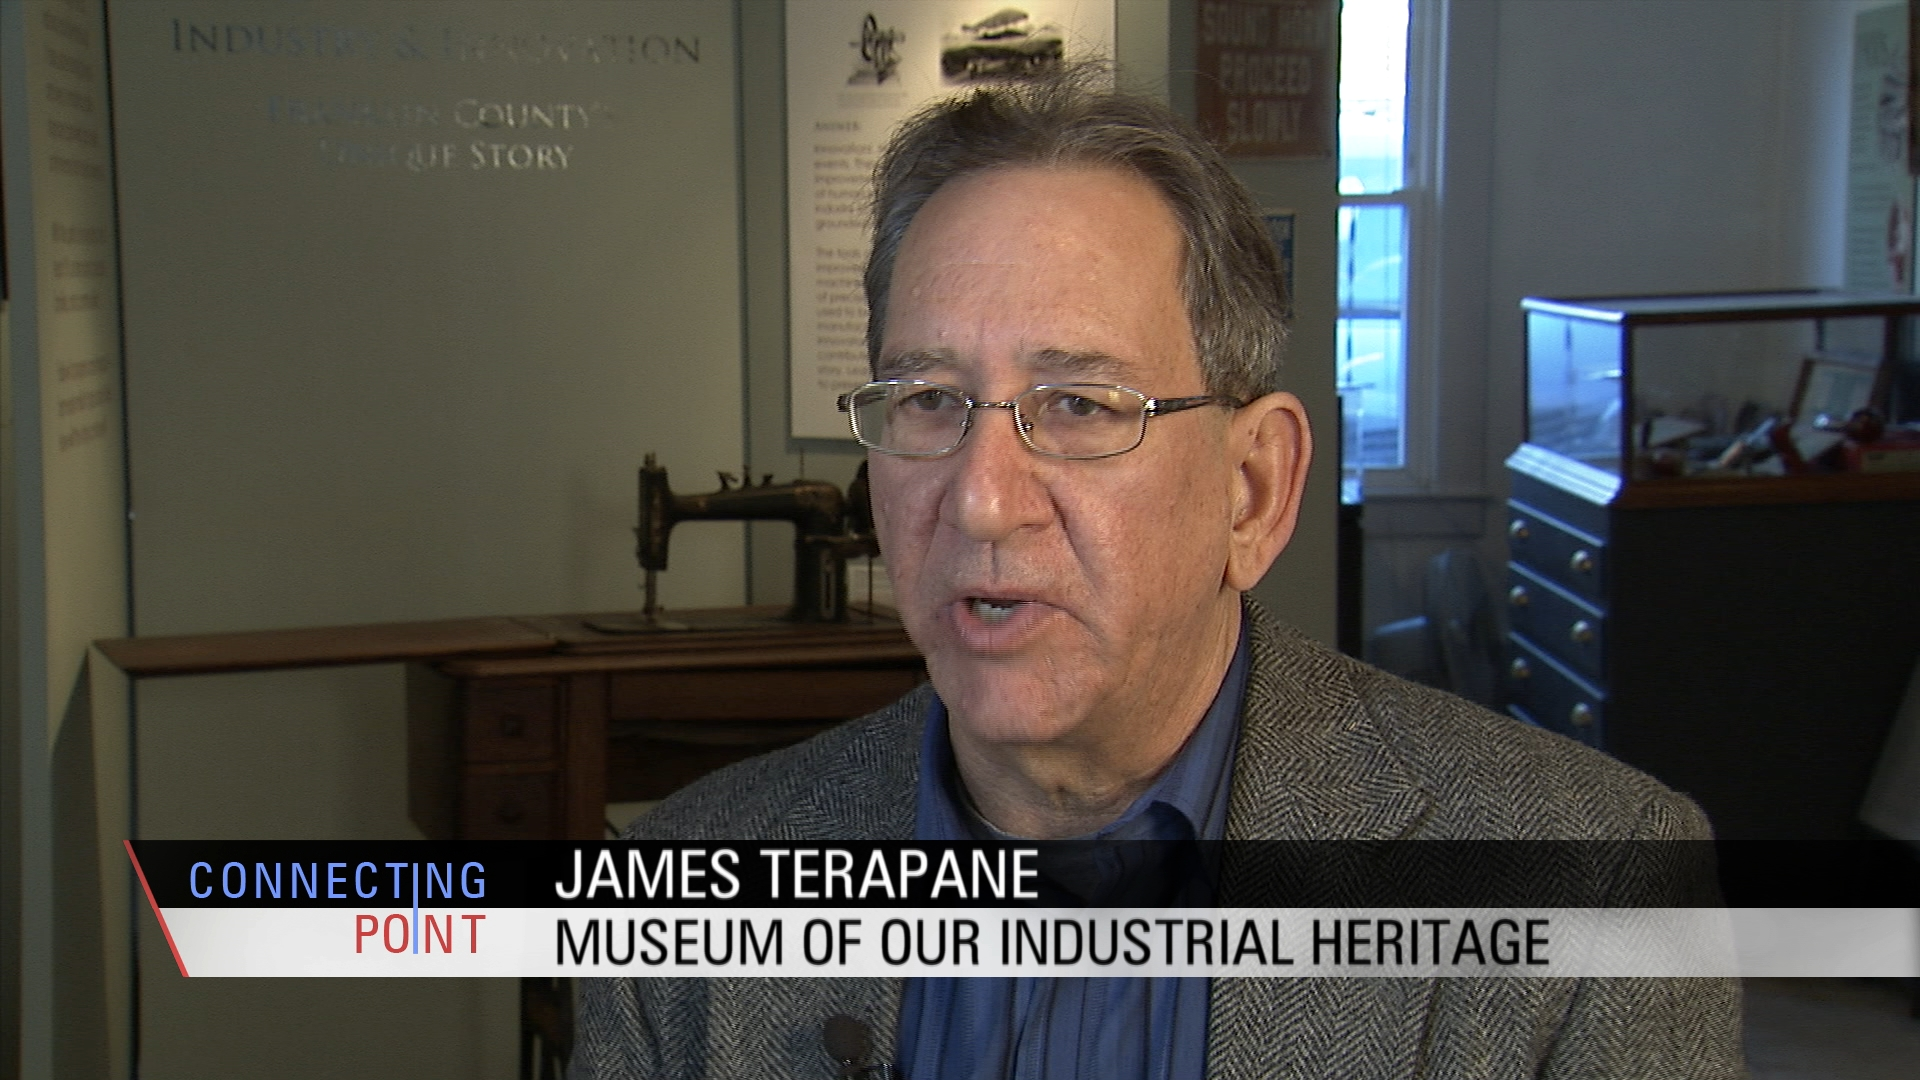 Museum of Our Industrial Heritage director James Terapane